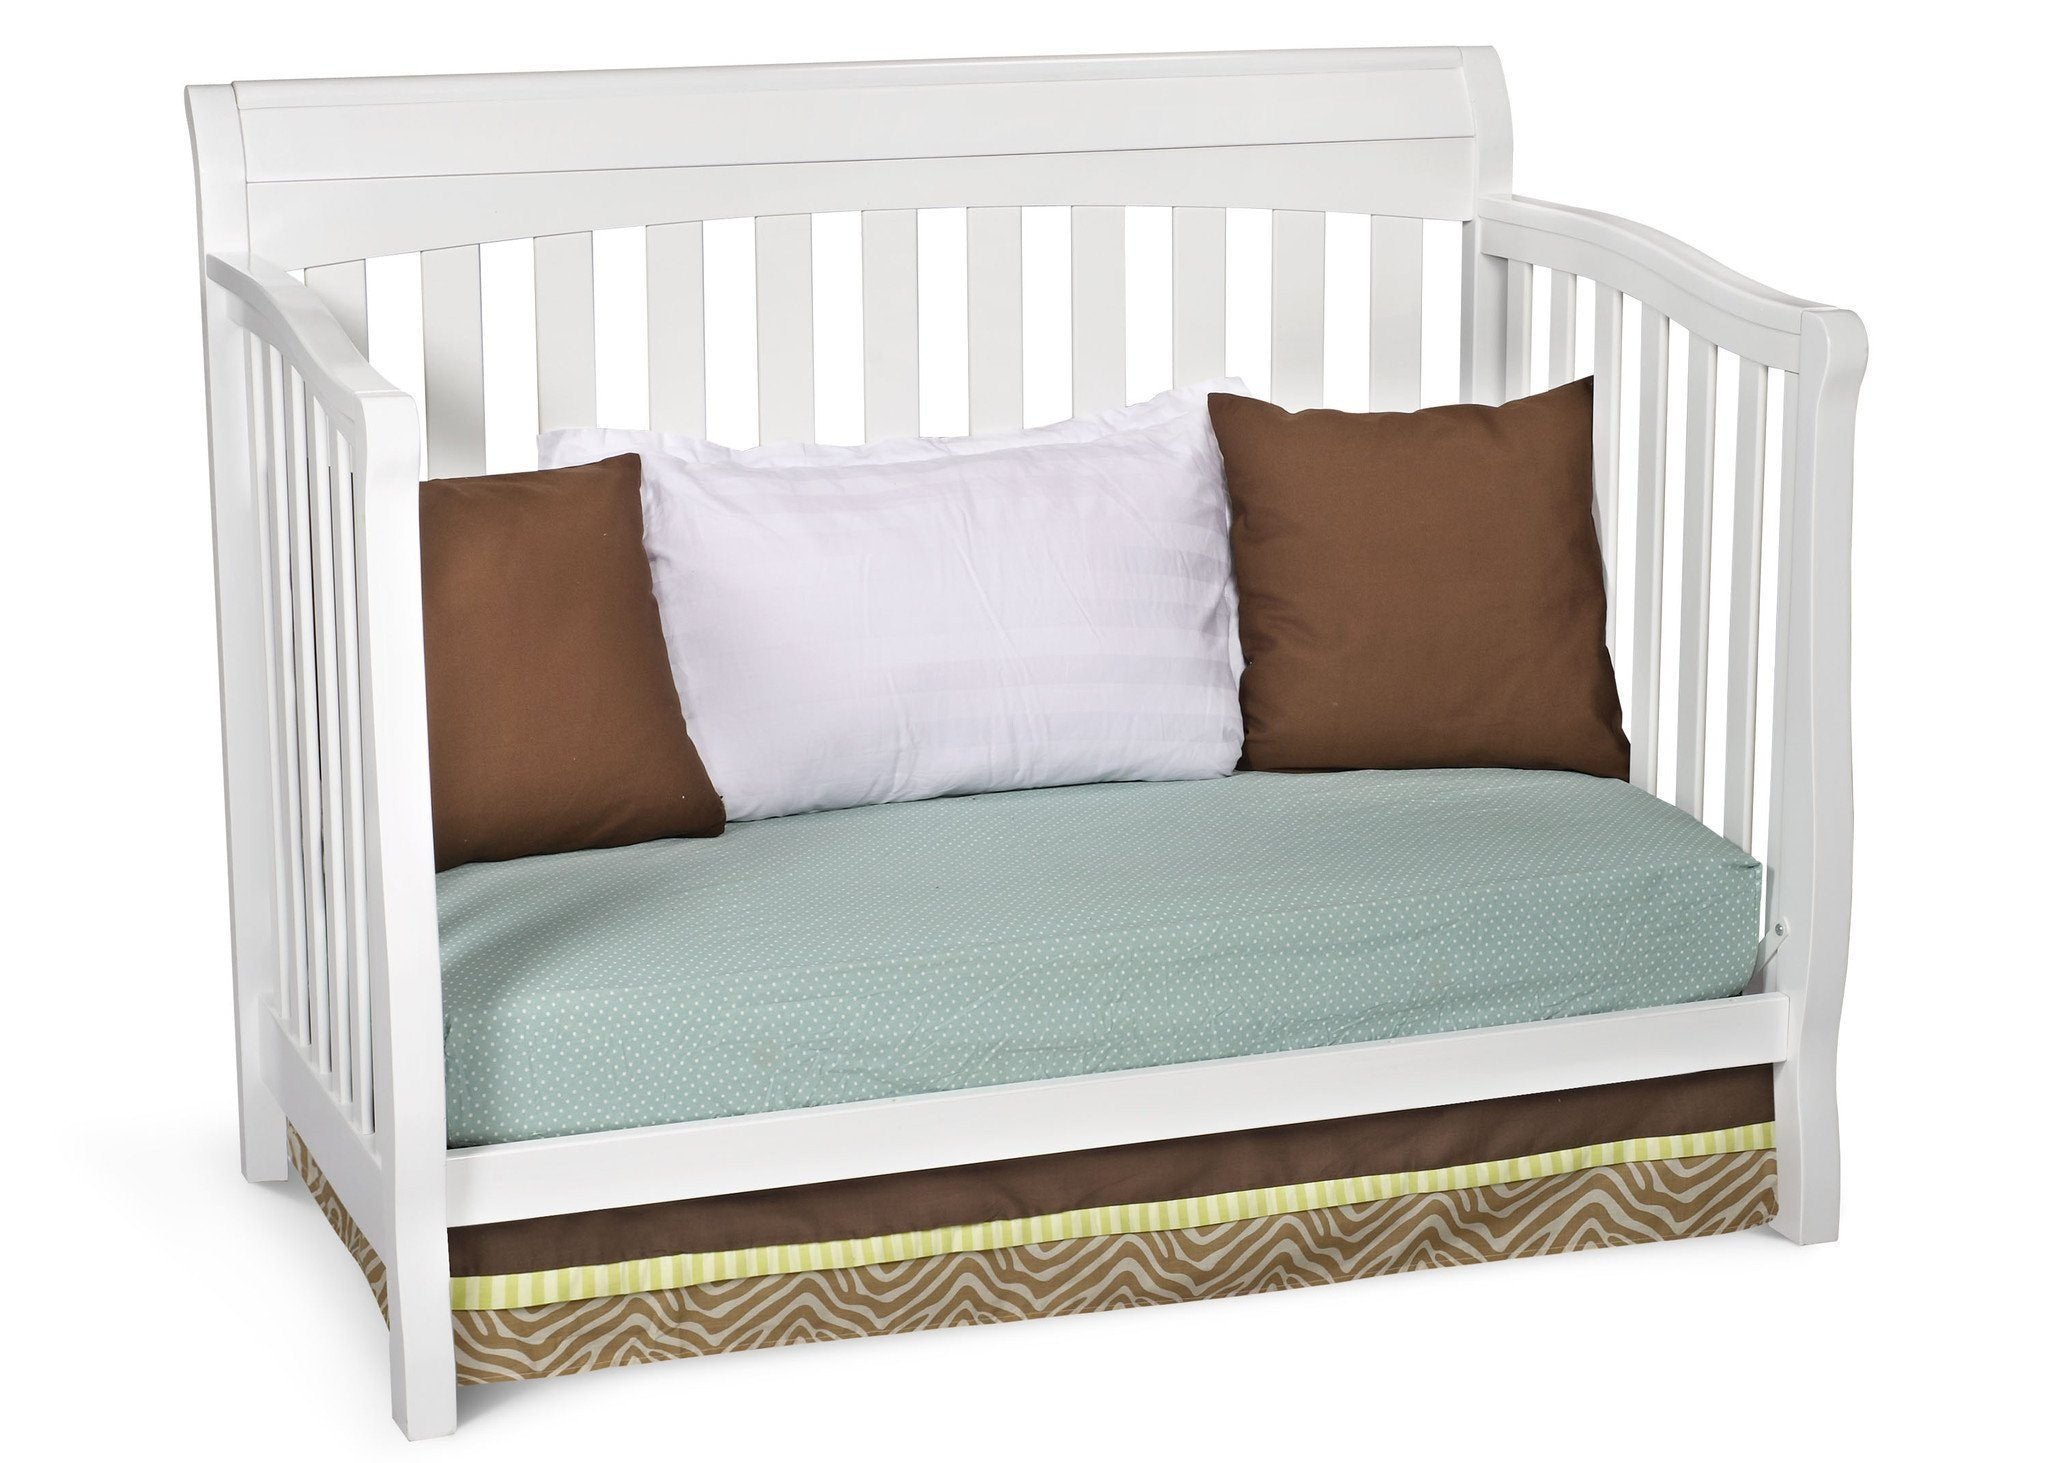 Delta Childrens White (100) Eclipse 4-in-1 Day Bed Conversion a4a